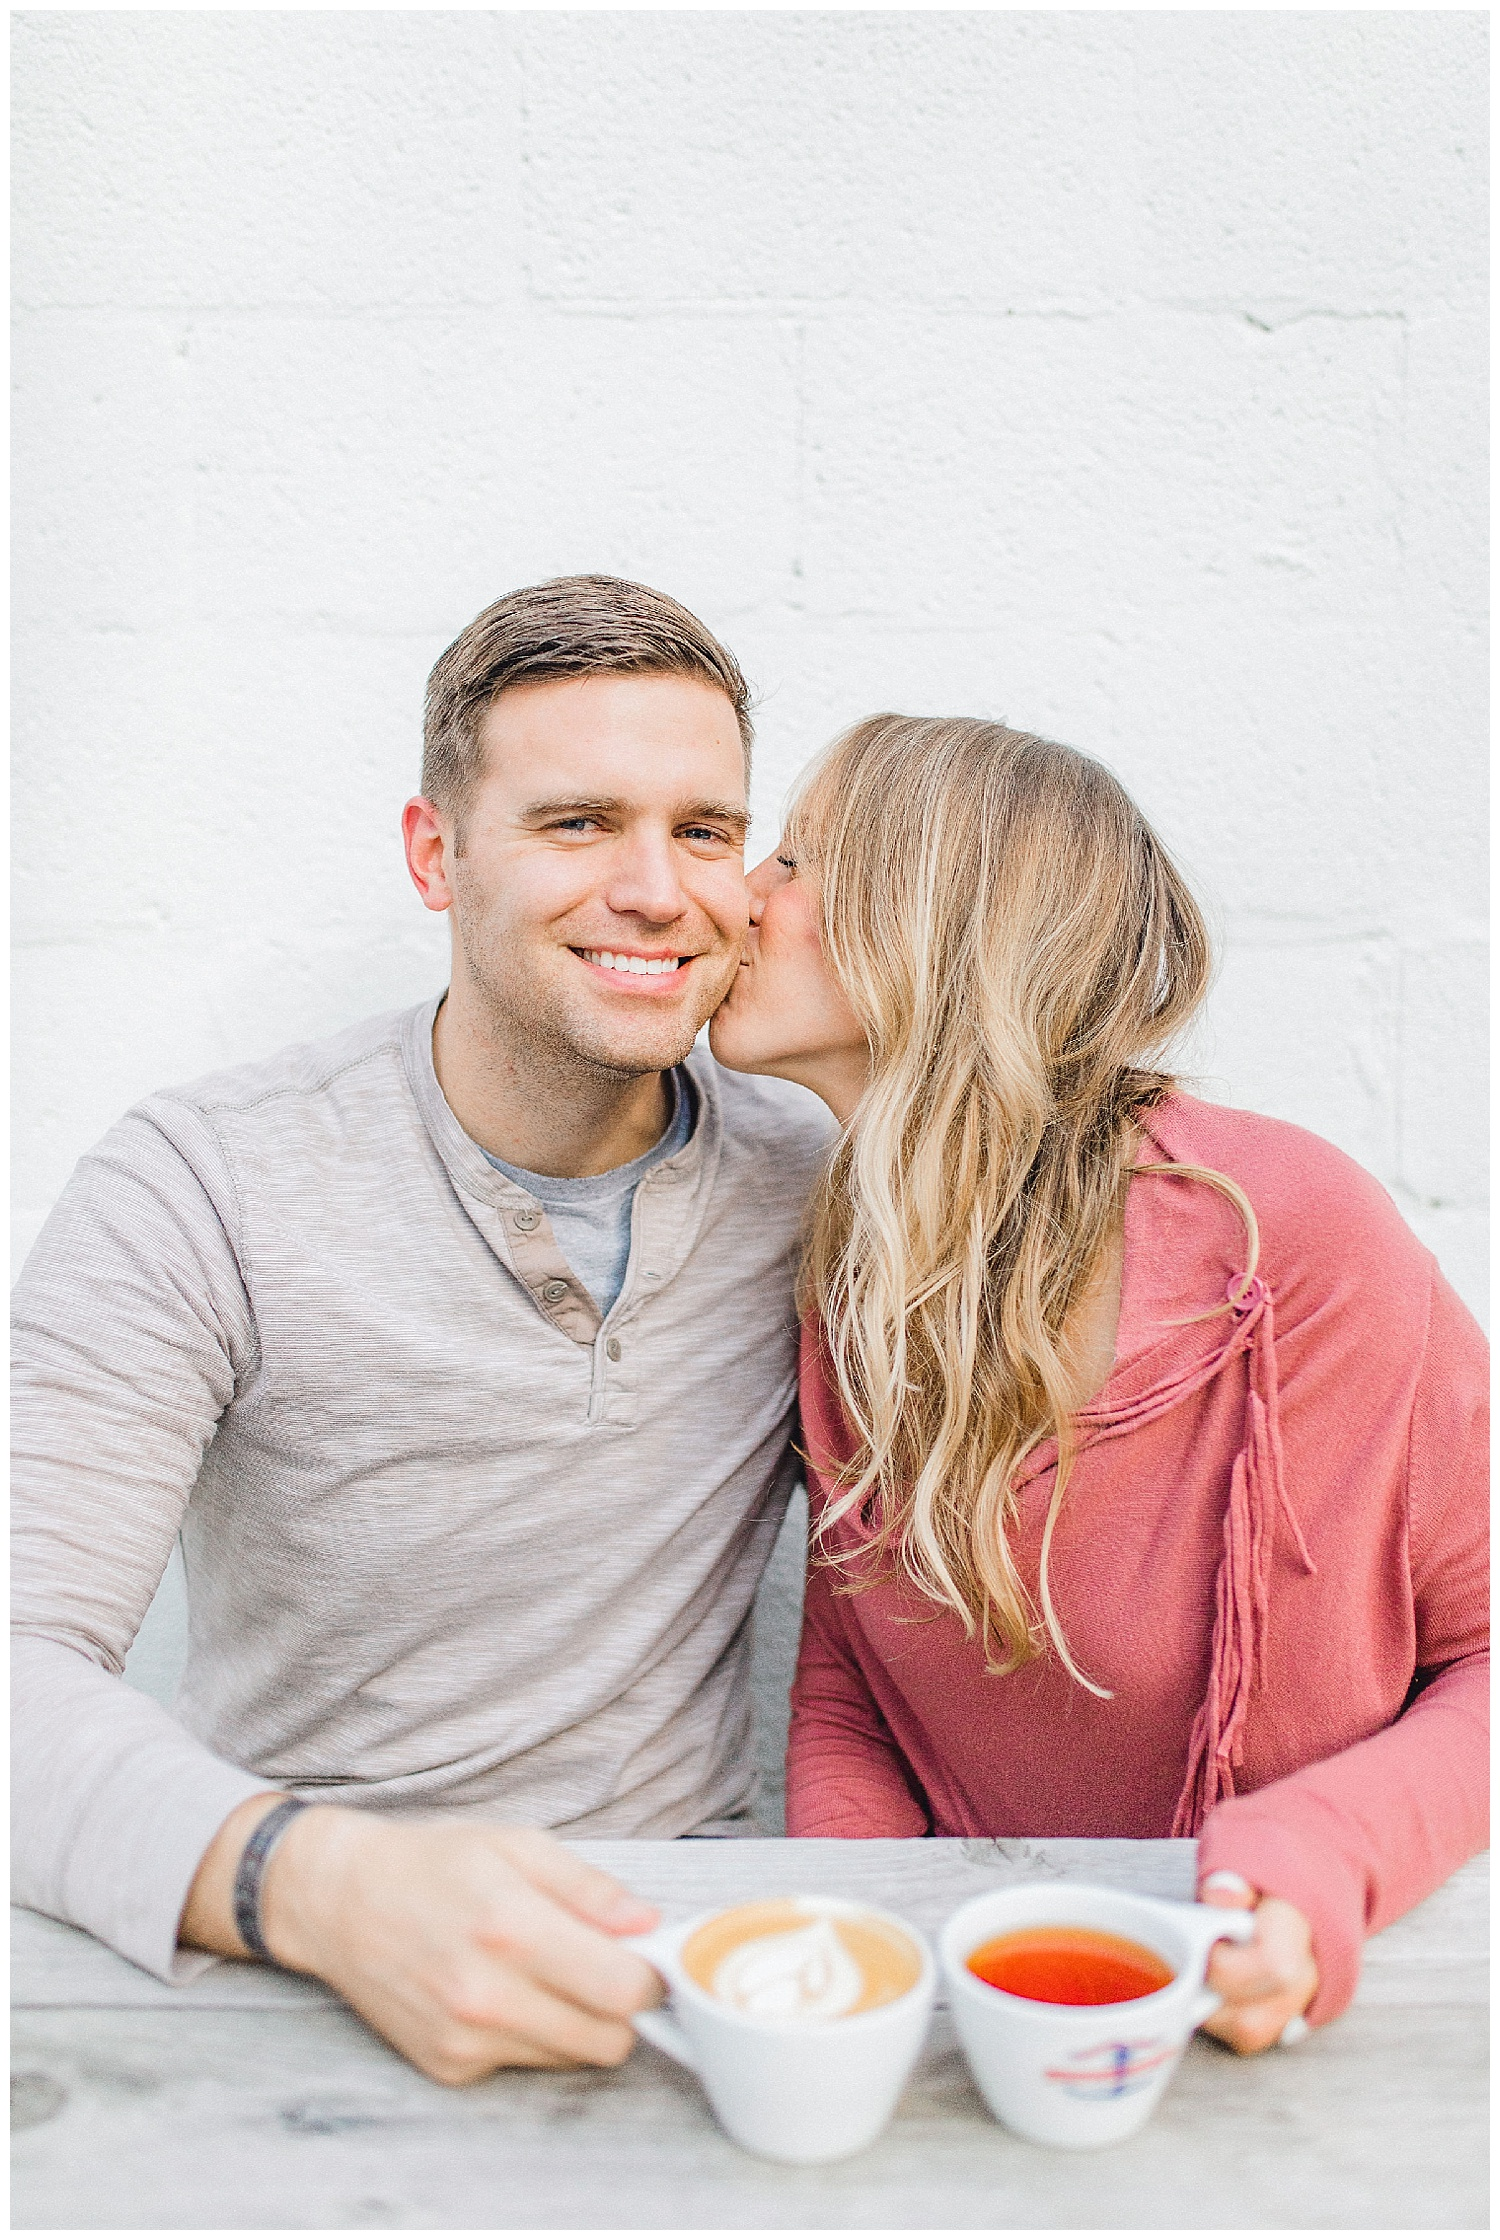 ERC_0905_Downtown Nashville Engagement Session at Barista Parlor | Emma Rose Company Wedding Photographer | Outfit Inspiration for Engagement Session | Kindred Light and Airy Photographer.jpg